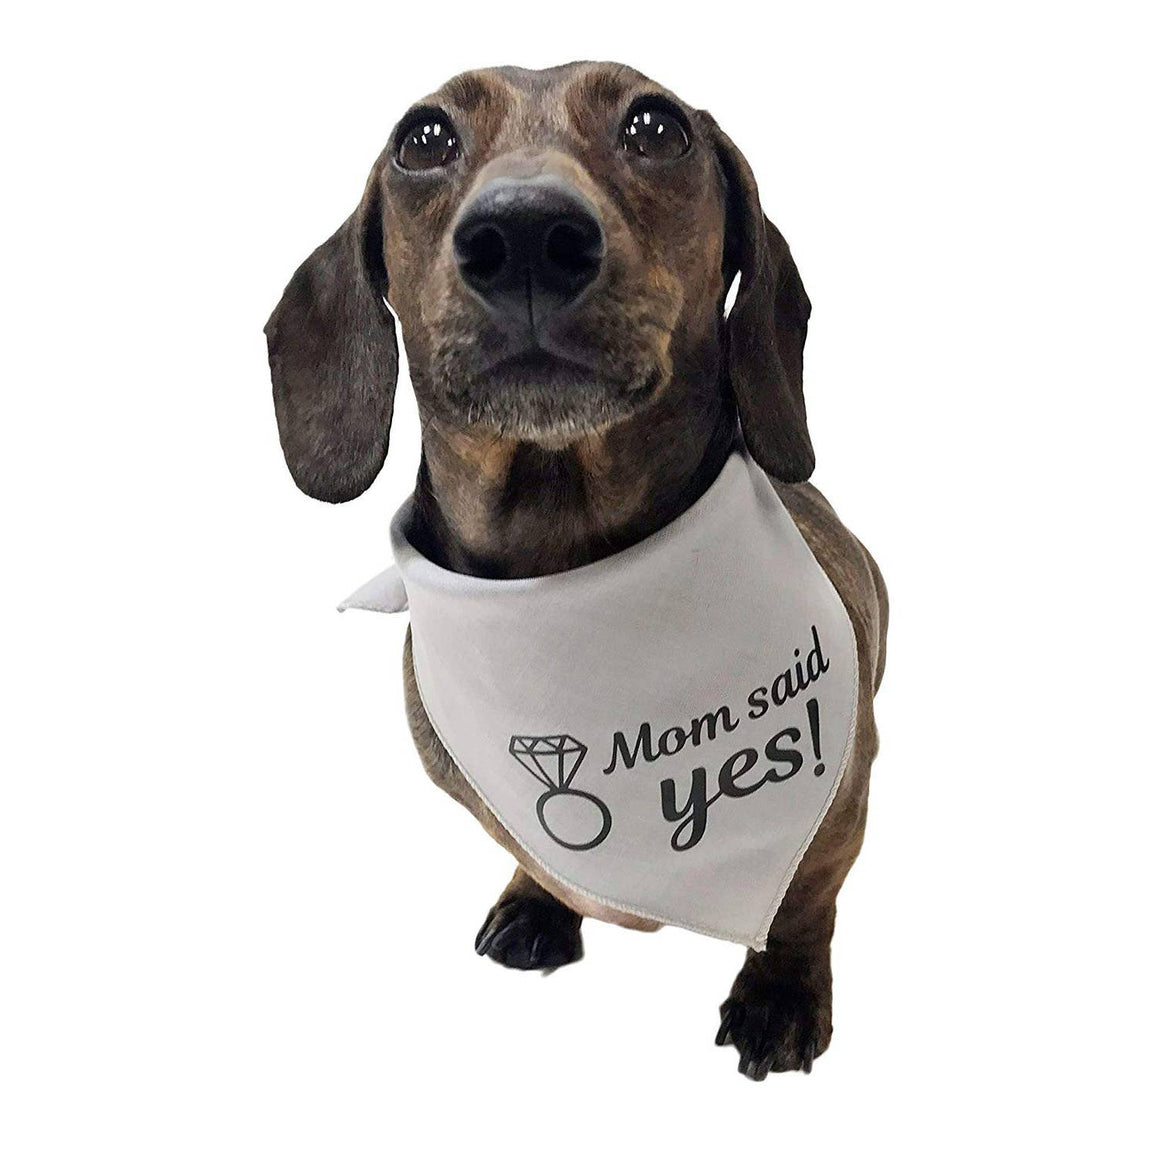 Midlee Mom Said Yes Dog Bandana Engagement Announcement - Small